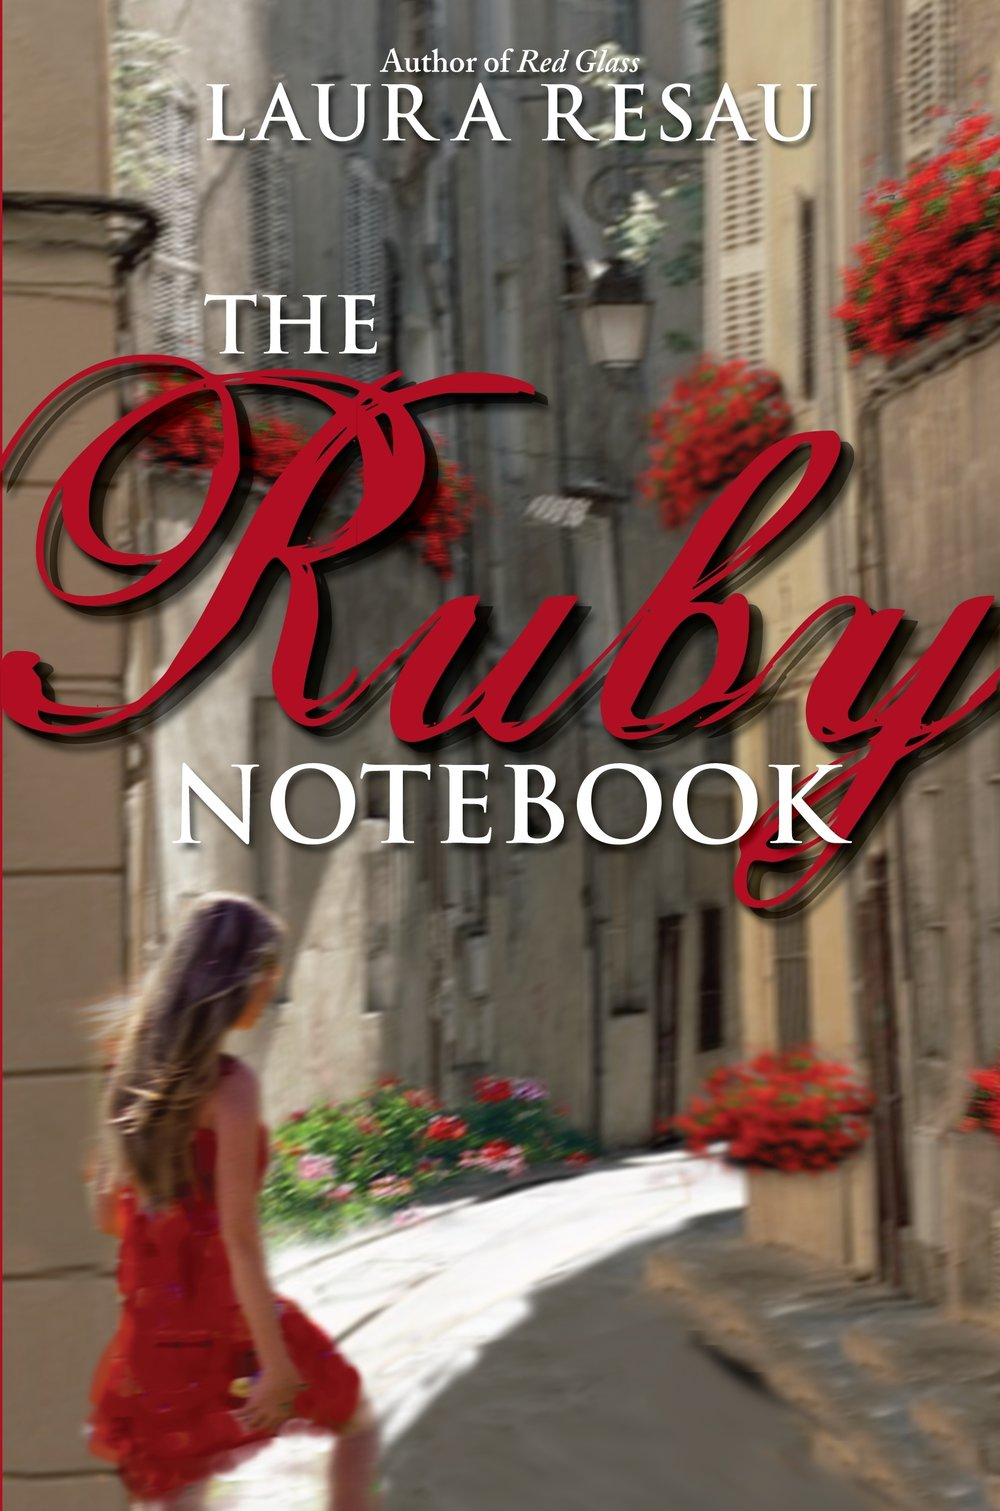 The_Ruby_Notebook_cover_high_res.JPG